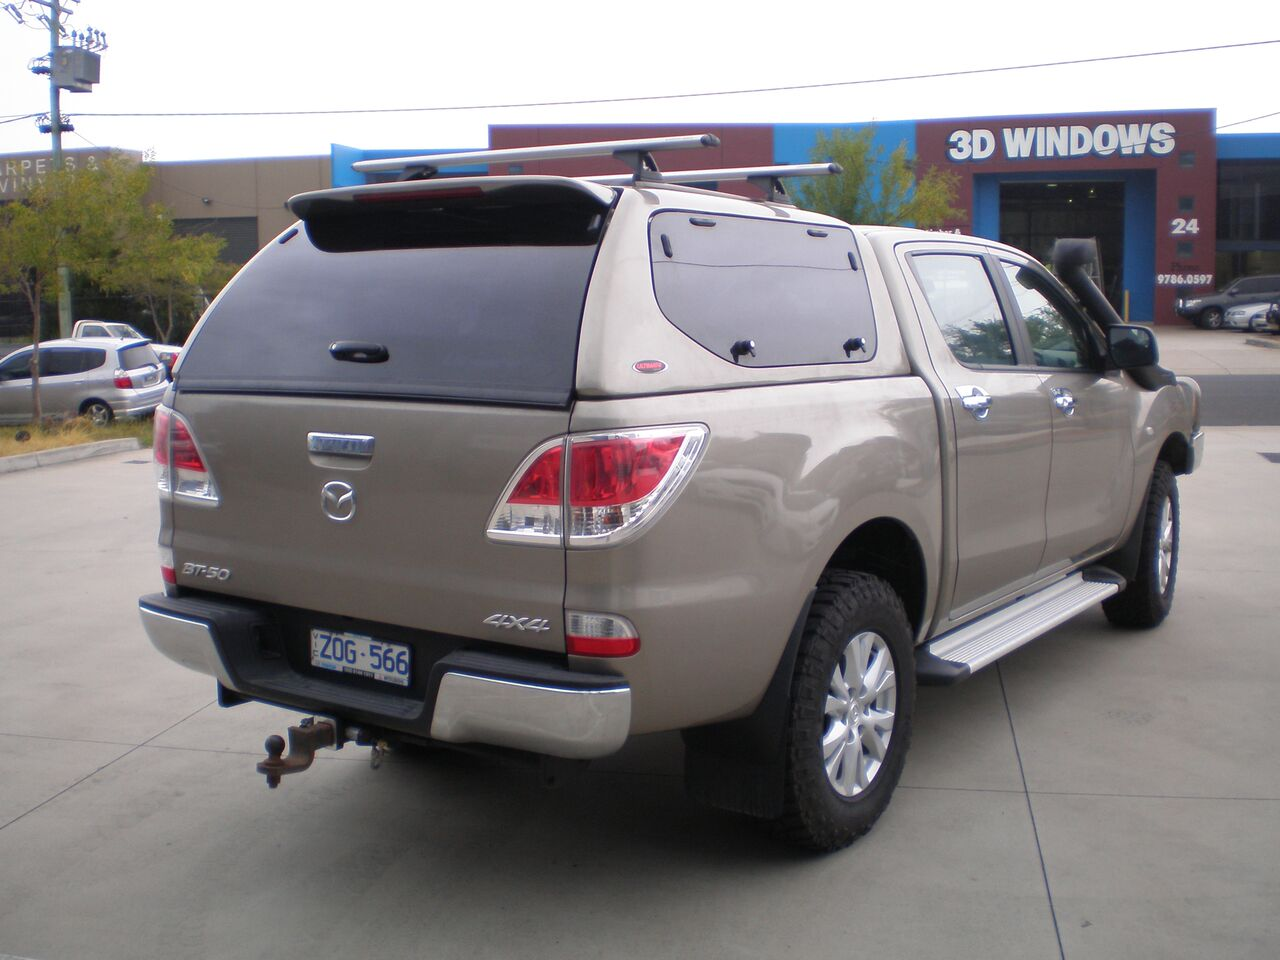 Alfa img showing gt leer canopy glass - Mazda Bt50 My16 Canopy